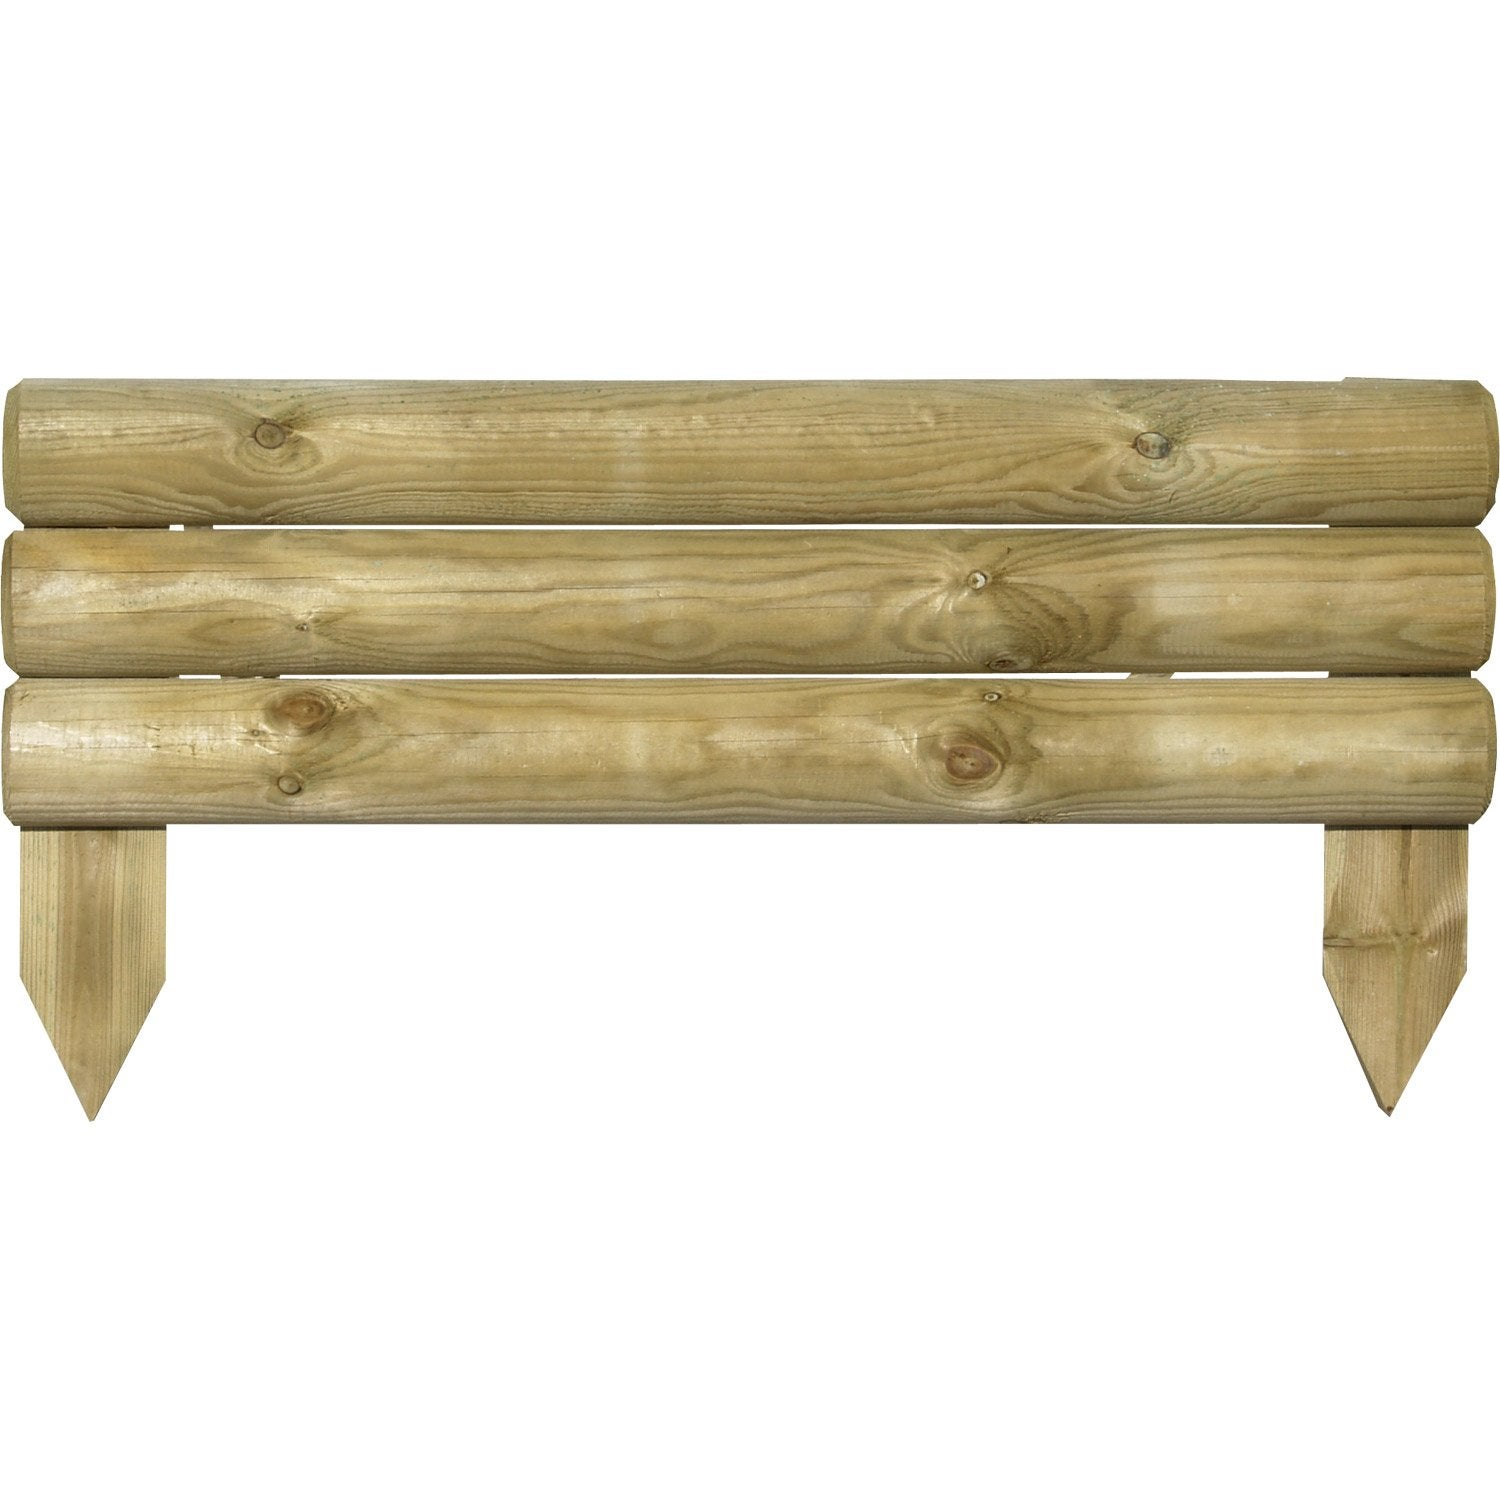 Bordure planter bois naturel x cm leroy merlin - Bordure jardin bois brico ...